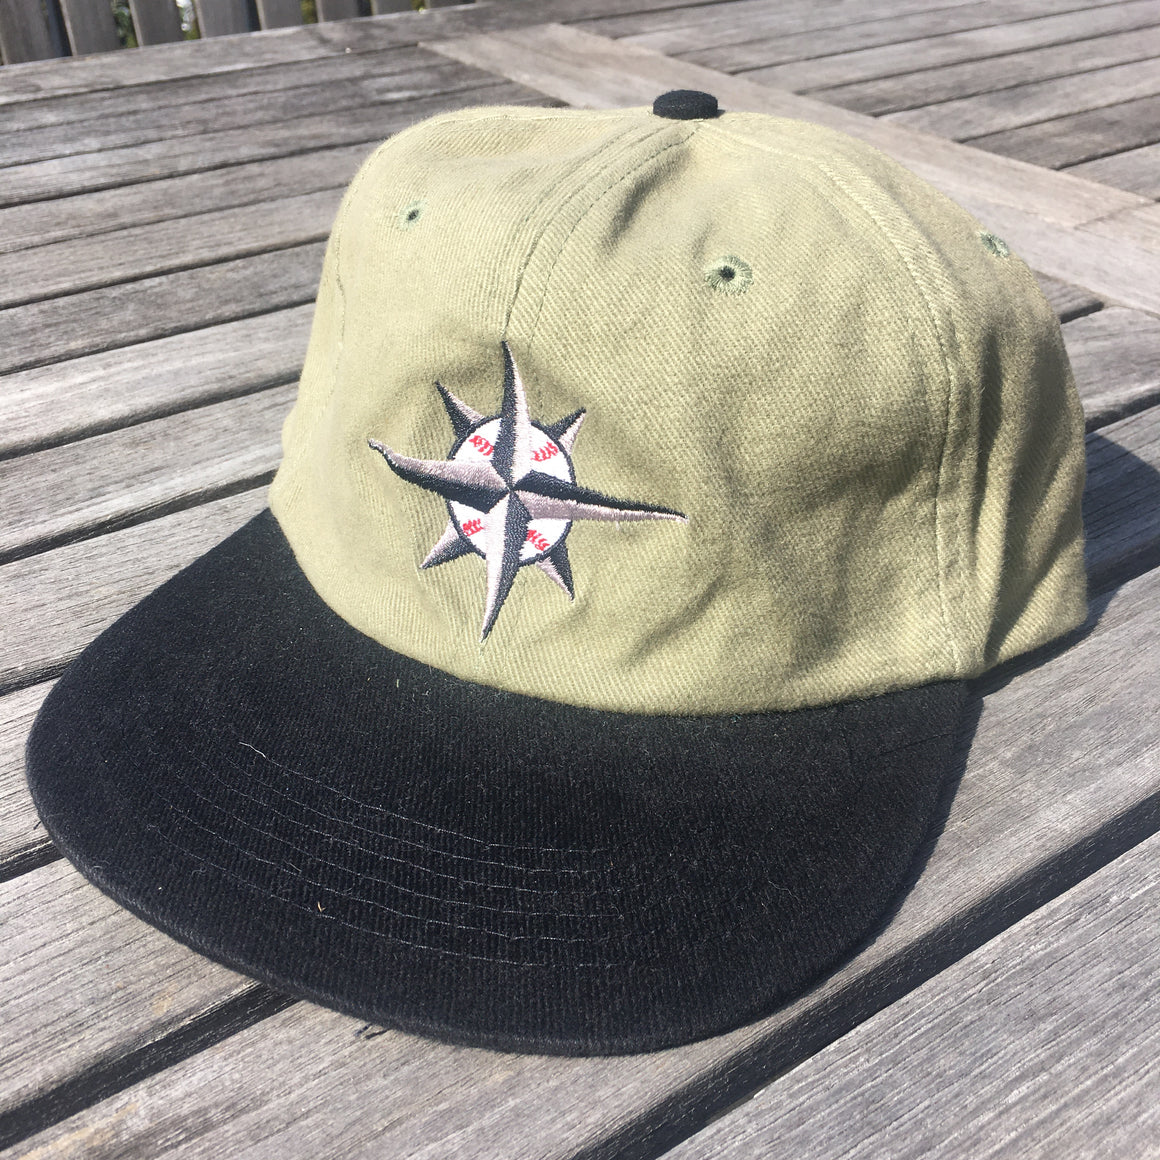 Seattle Mariners compass hat